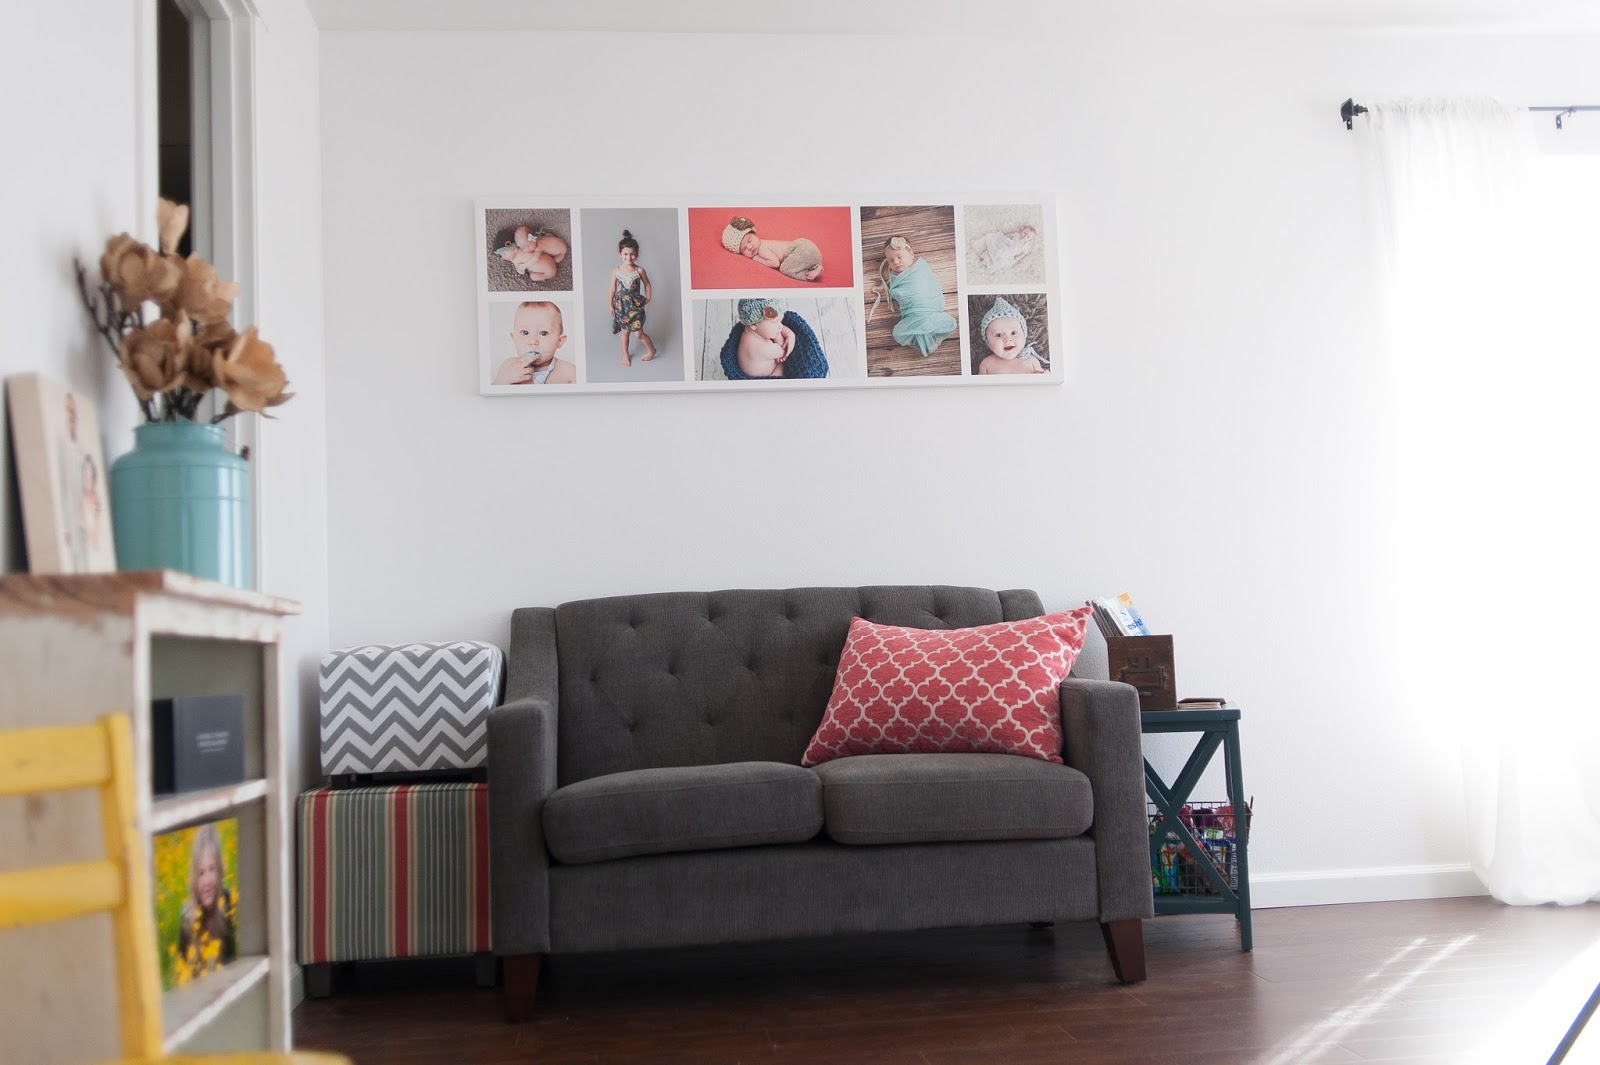 Gray Love seat,colorful accents. White Walls and hardwood floors